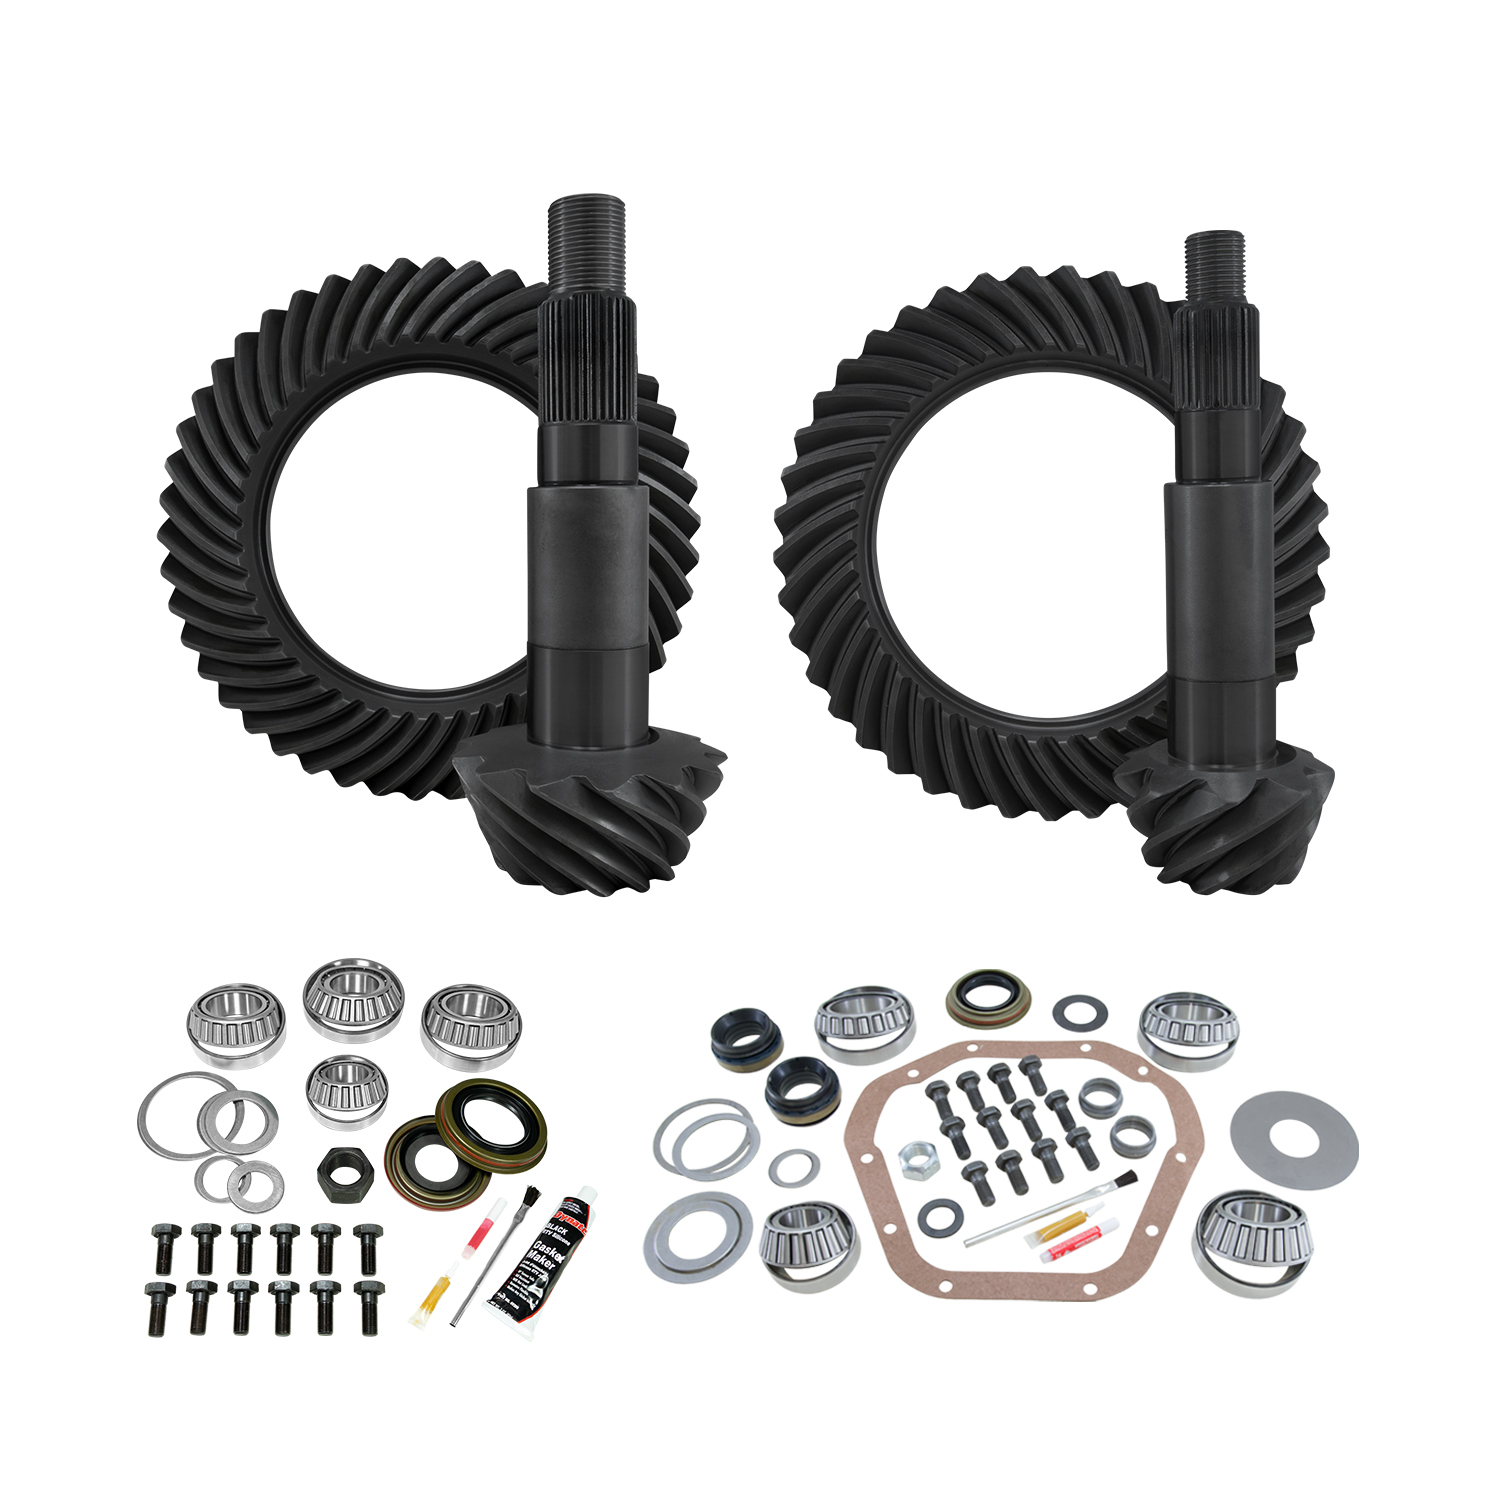 YGK148 - Yukon Complete Gear and Kit Pakage for F350 Dana 80 Rear & Dana 60 Reverse Thick Front, with 4:56 Gear Ratio